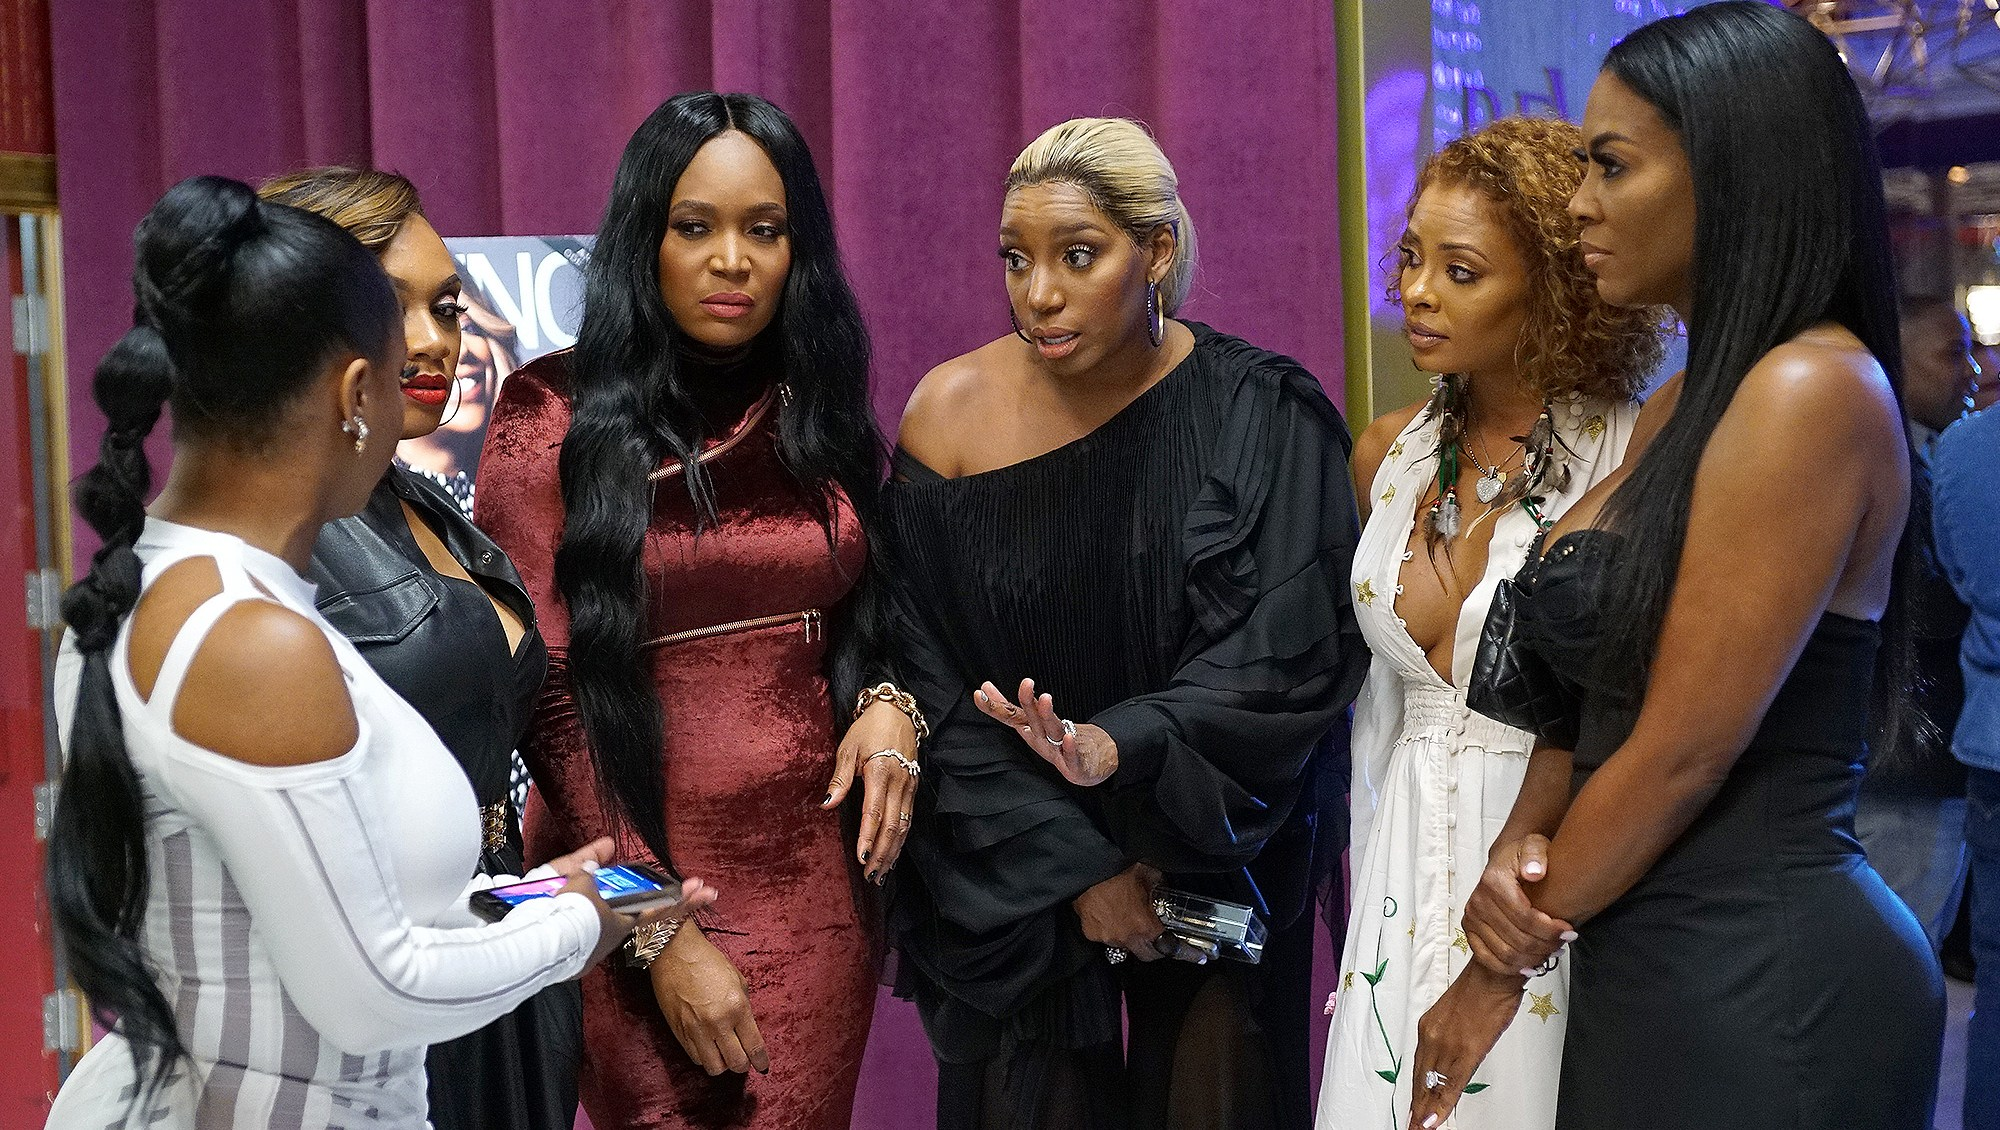 Real Housewives of Atlanta, Kandi Burruss, Marlo Hampton, Nene Leakes, Eva Marcille, Kenya Moore